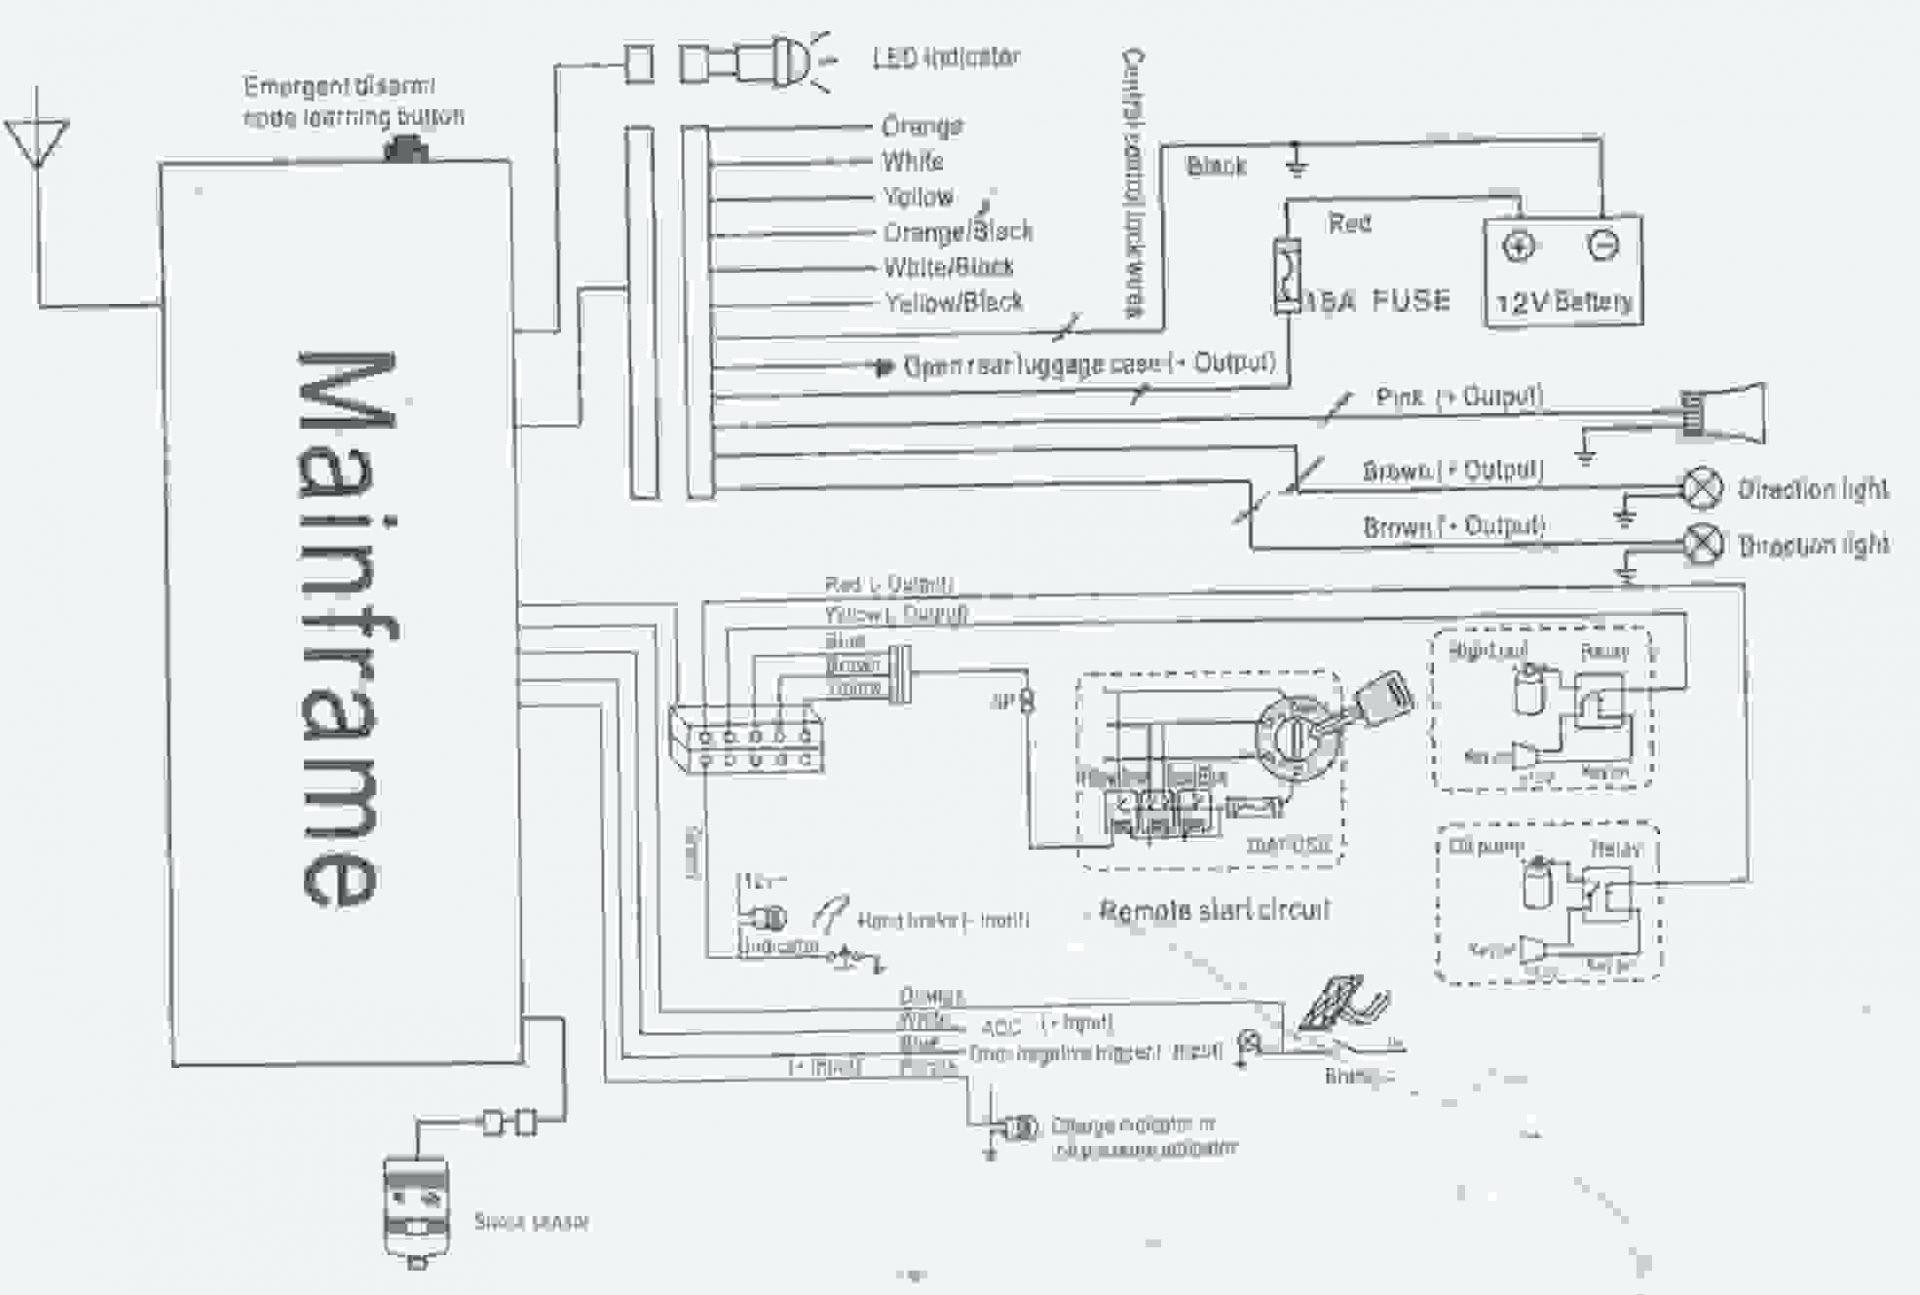 3 Prong Flasher Diagram in addition 70 Hp Force Wiring Diagram together with Avital Remote Start Wiring Diagram Ford Freestar as well Enchanting Suzuki Outboard Wiring Diagram Photos Best Image likewise Audiovox Remote Start Wiring Diagram. on audiovox wiring diagram